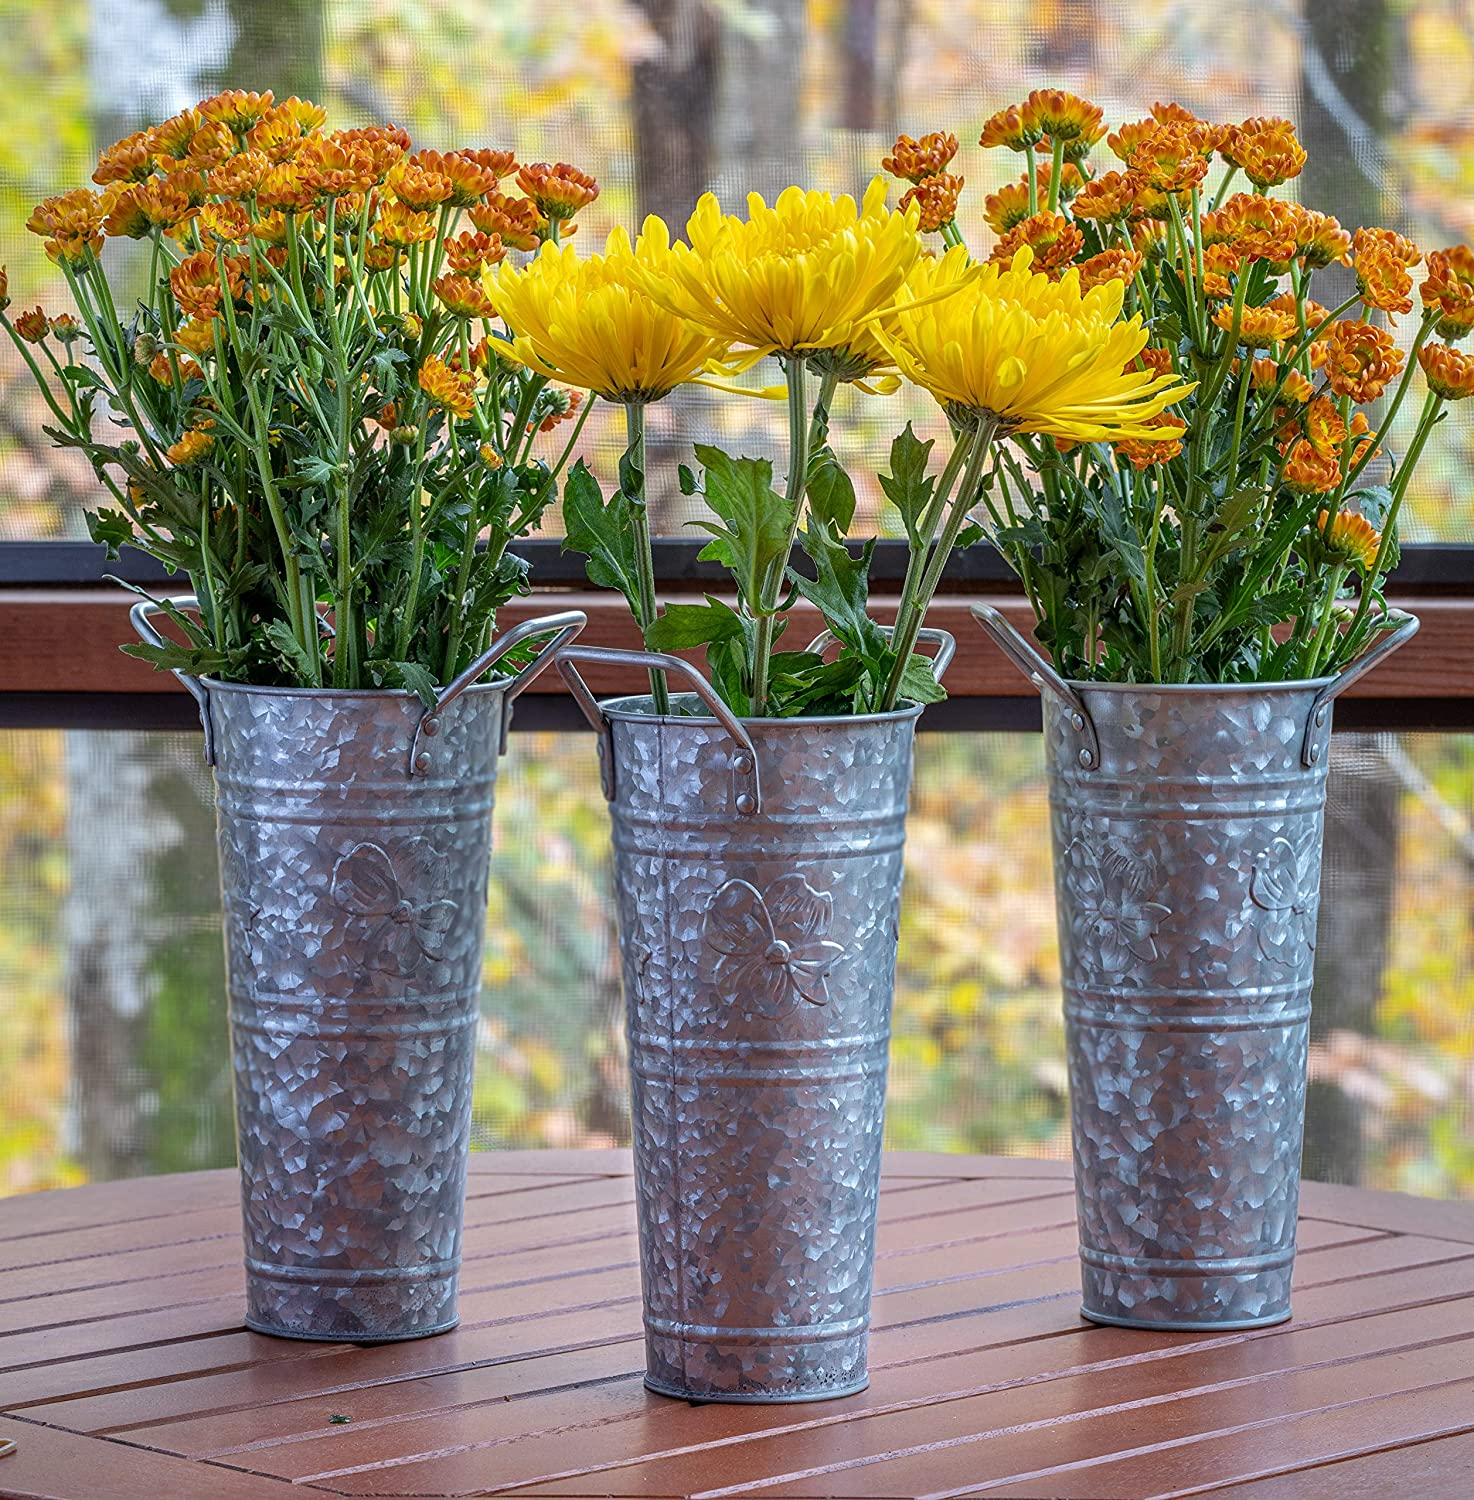 "French Flower Bucket Galvanized Vase – 9"" Set of 3 by Walford Home – Farmhouse Decorative Vases for Decor - Dogwood Blossom - Table Centerpiece Rustic Home Decor Metal Flower Vase Table Decor"